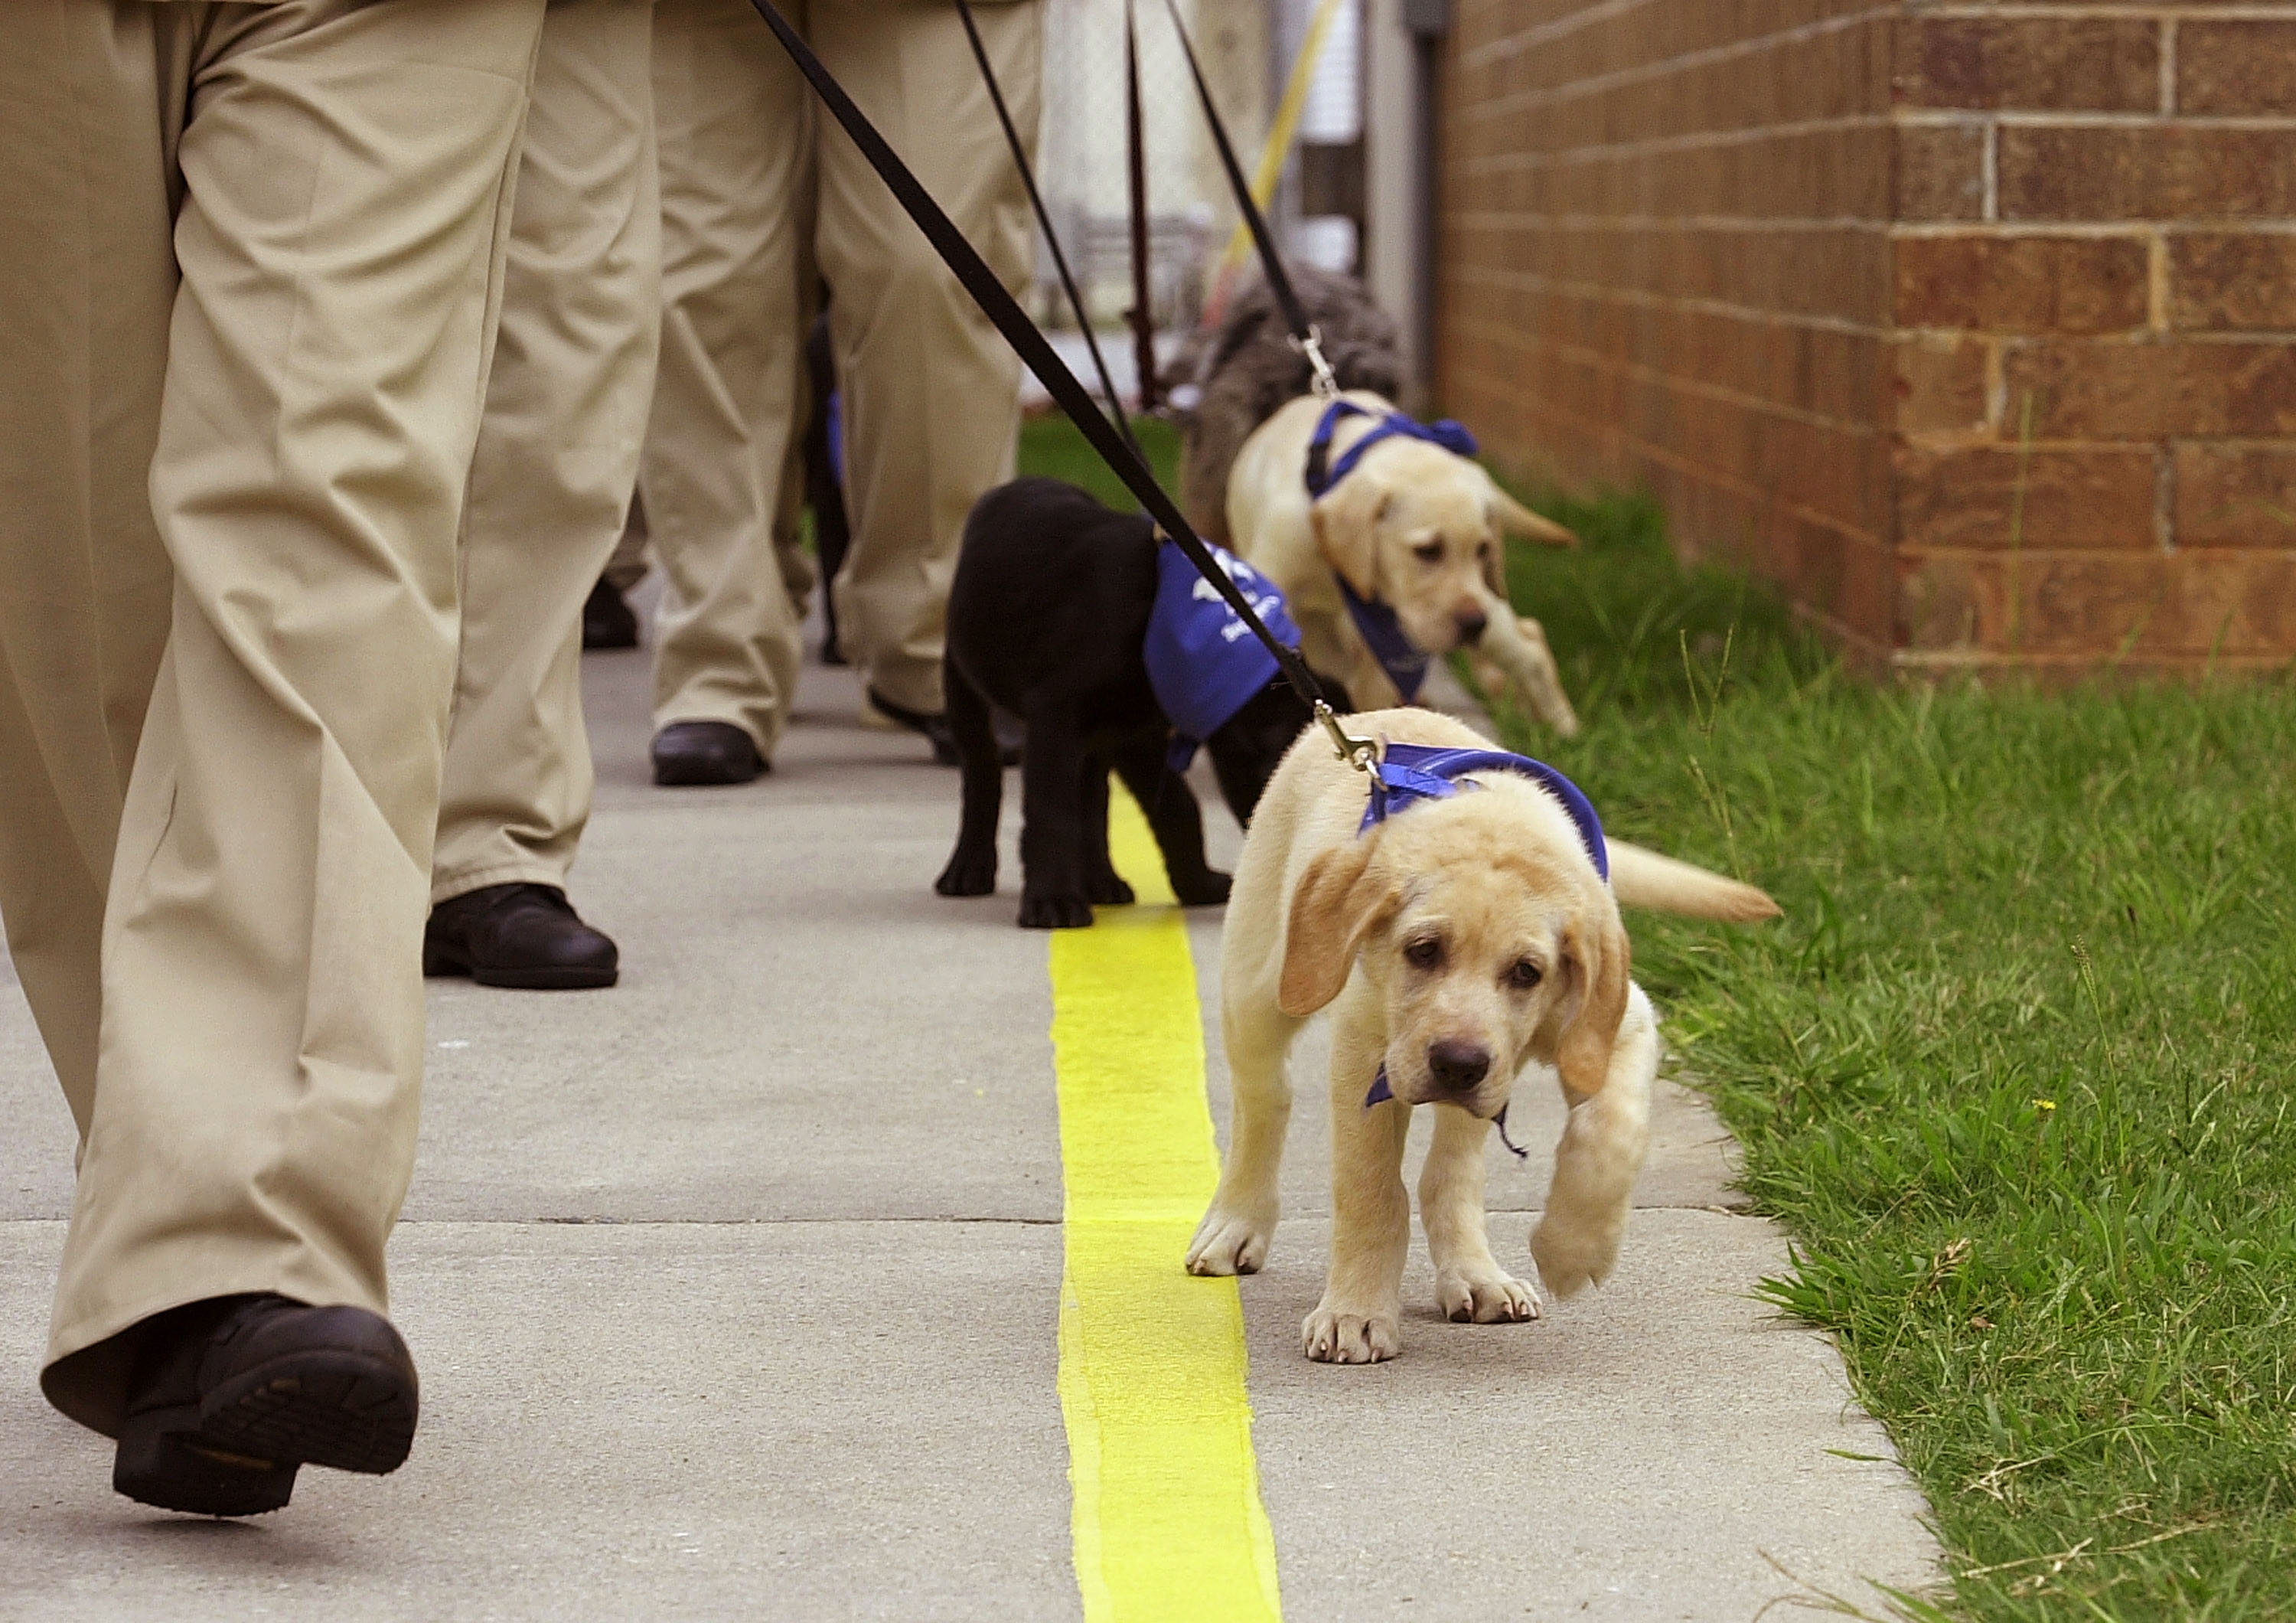 How do guide dogs help blind people?